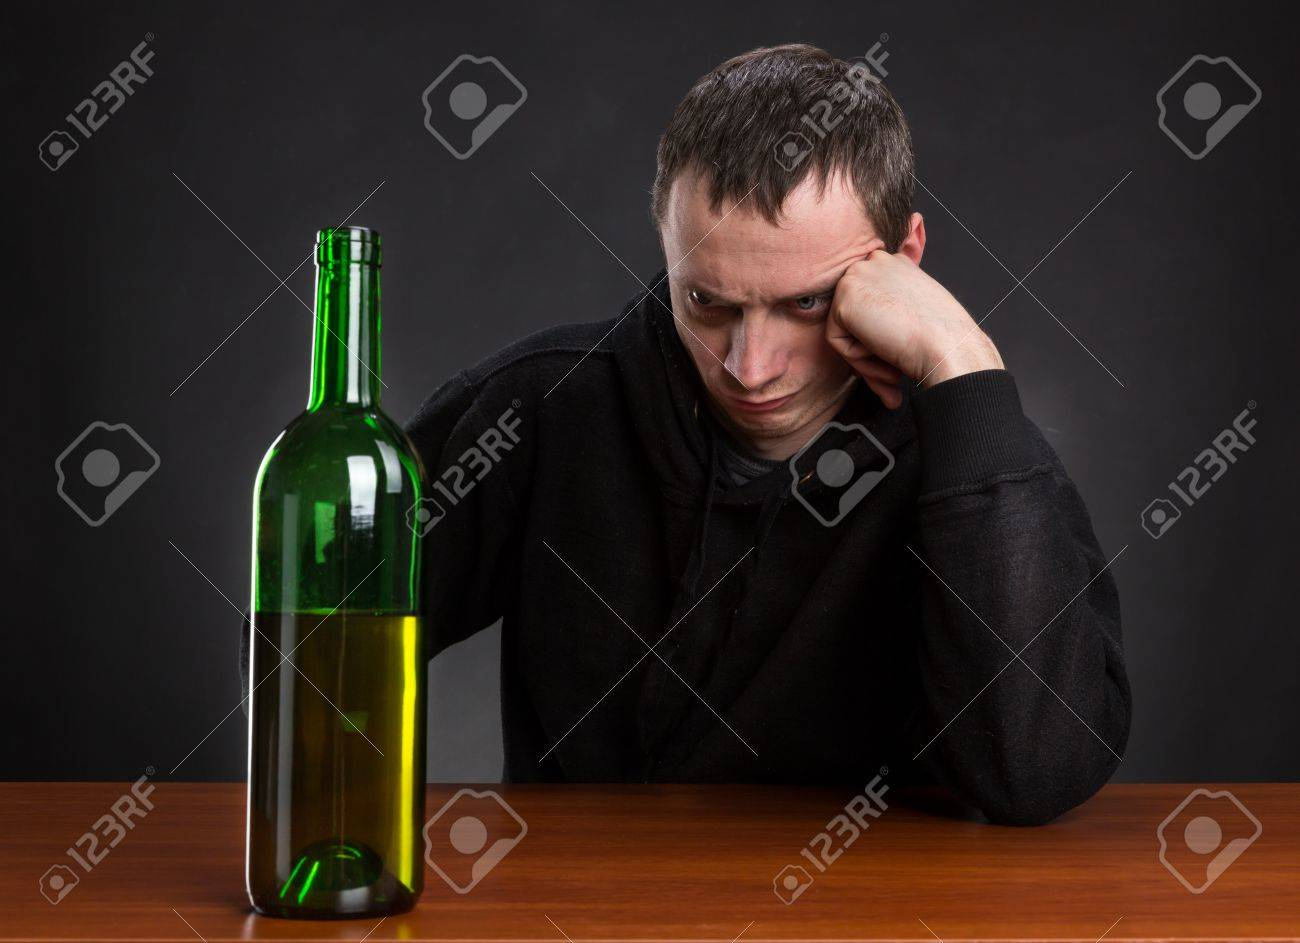 39184899-sad-man-looks-at-the-bottle-of-